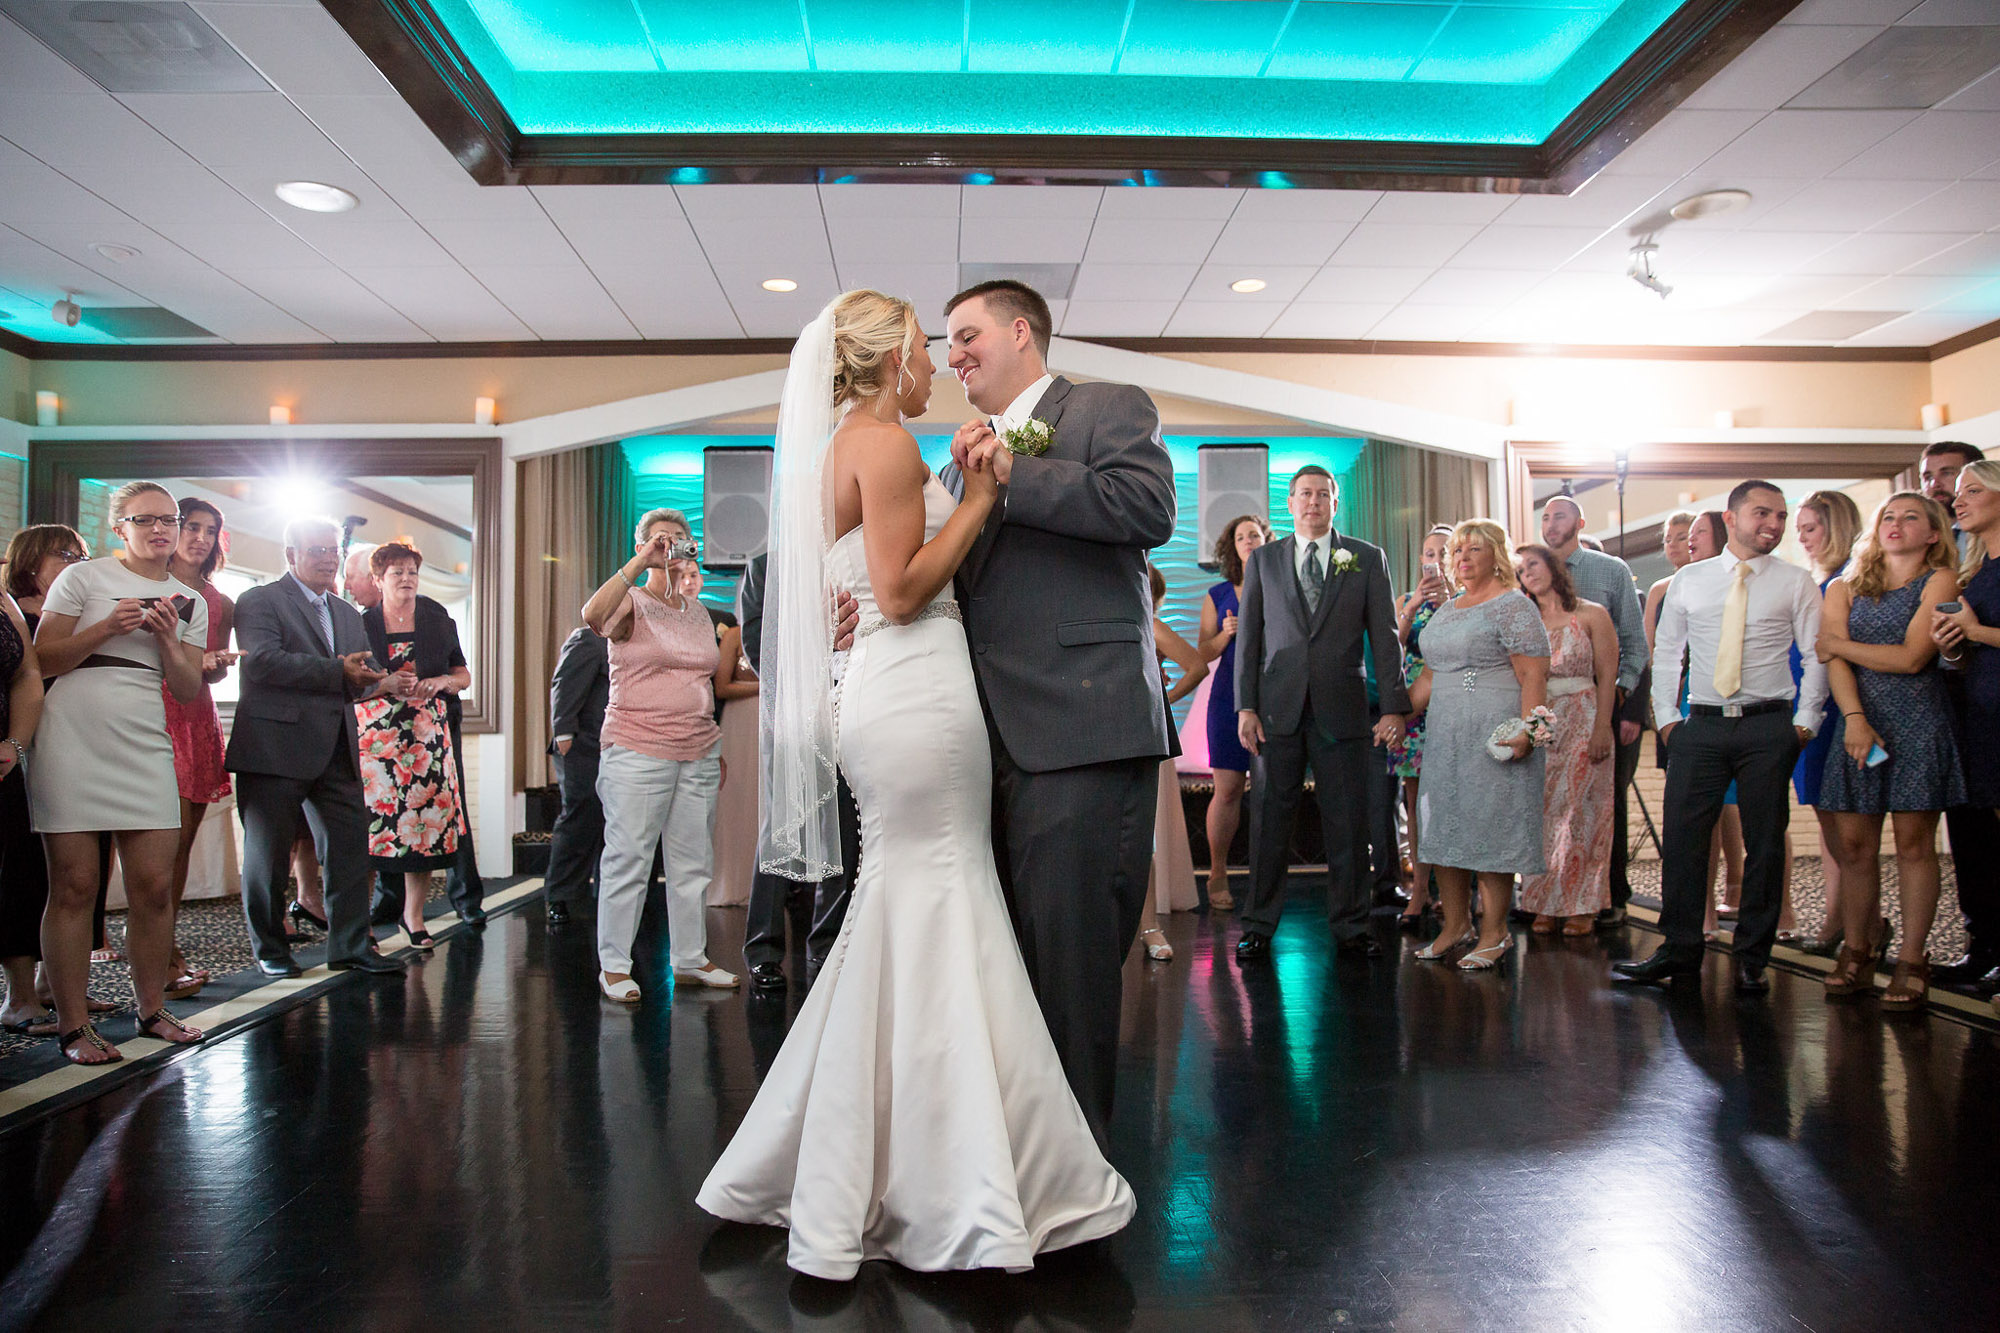 boston-wedding-photographer-26-north-studios-oceanview-ballroom-first-dance.jpg